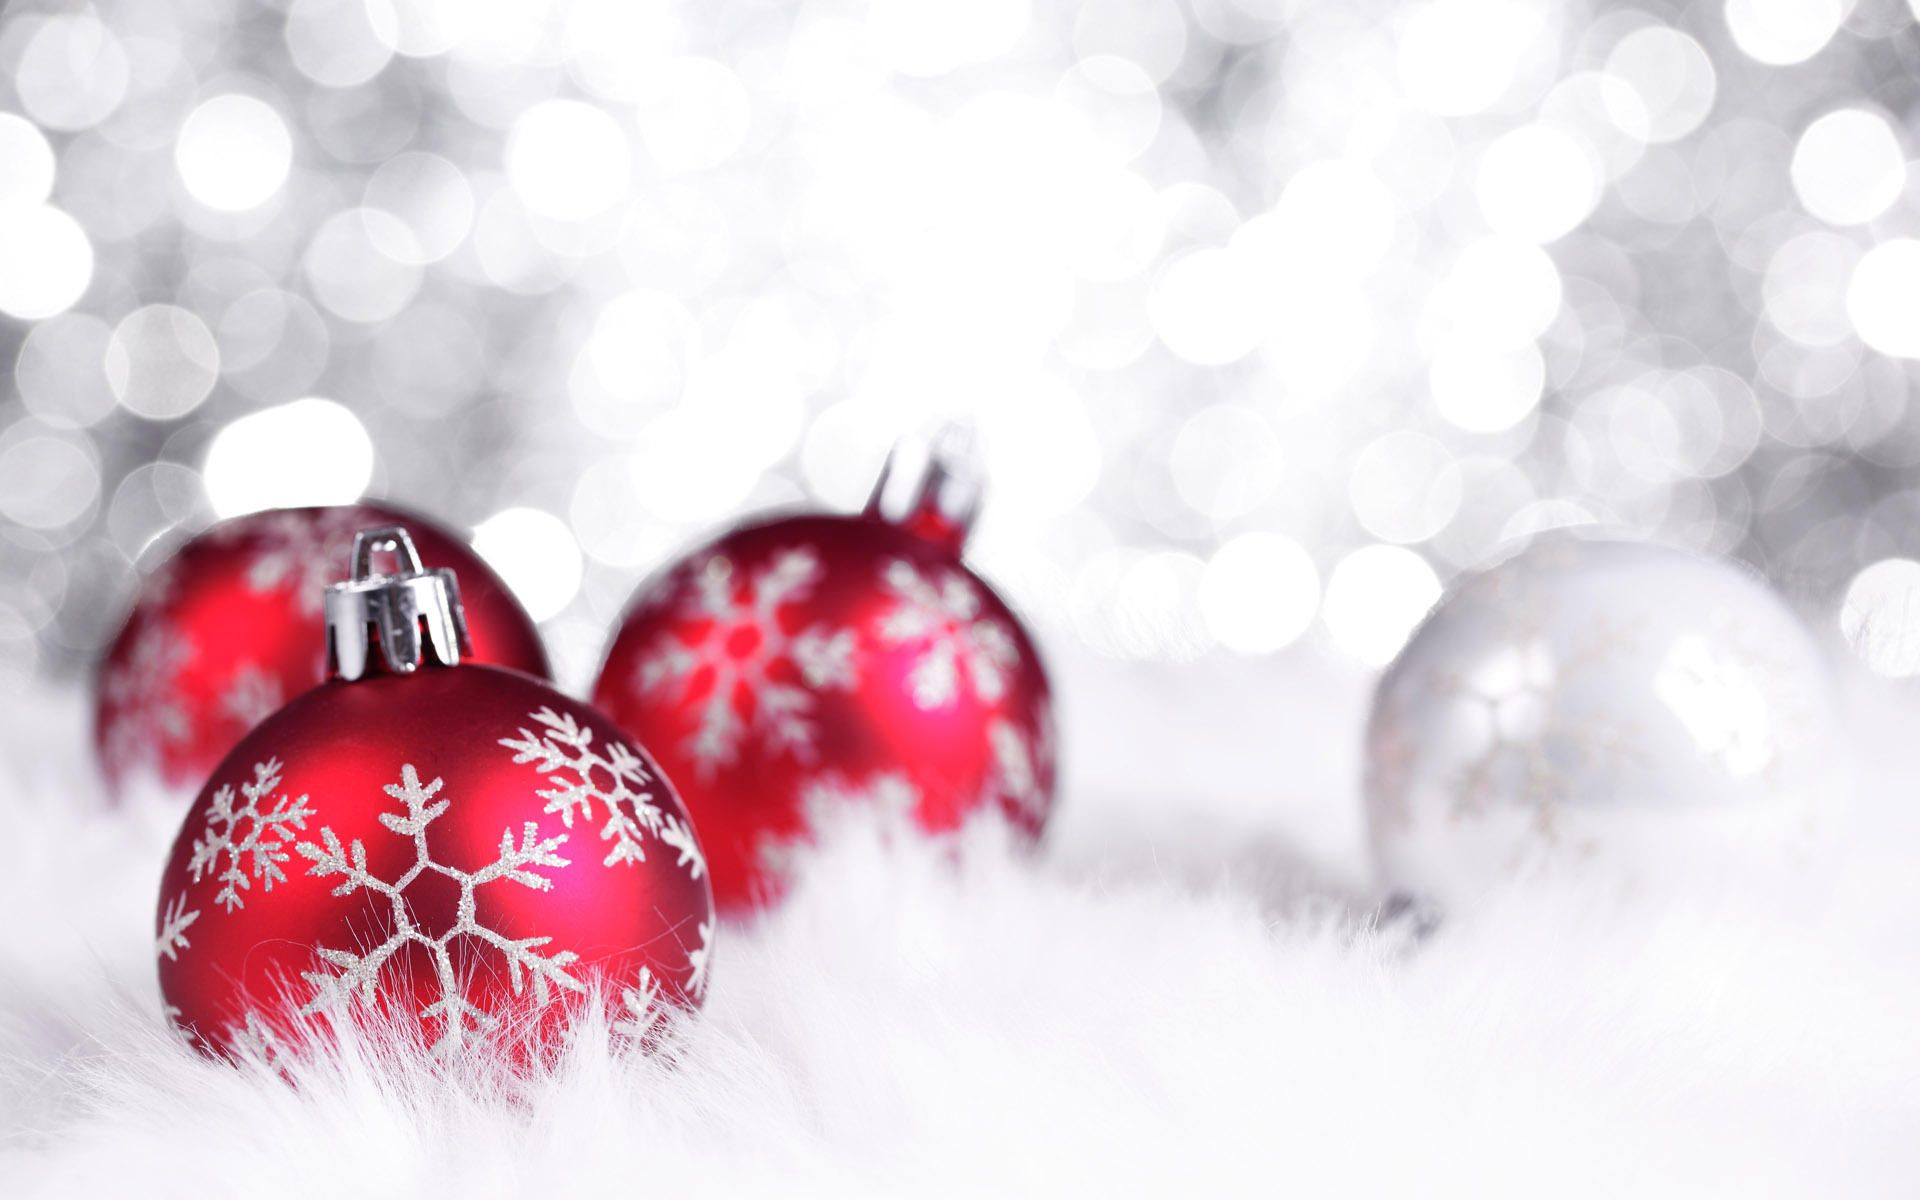 25 best colorful christmas wallpapers: 2014 | it'z almost that time